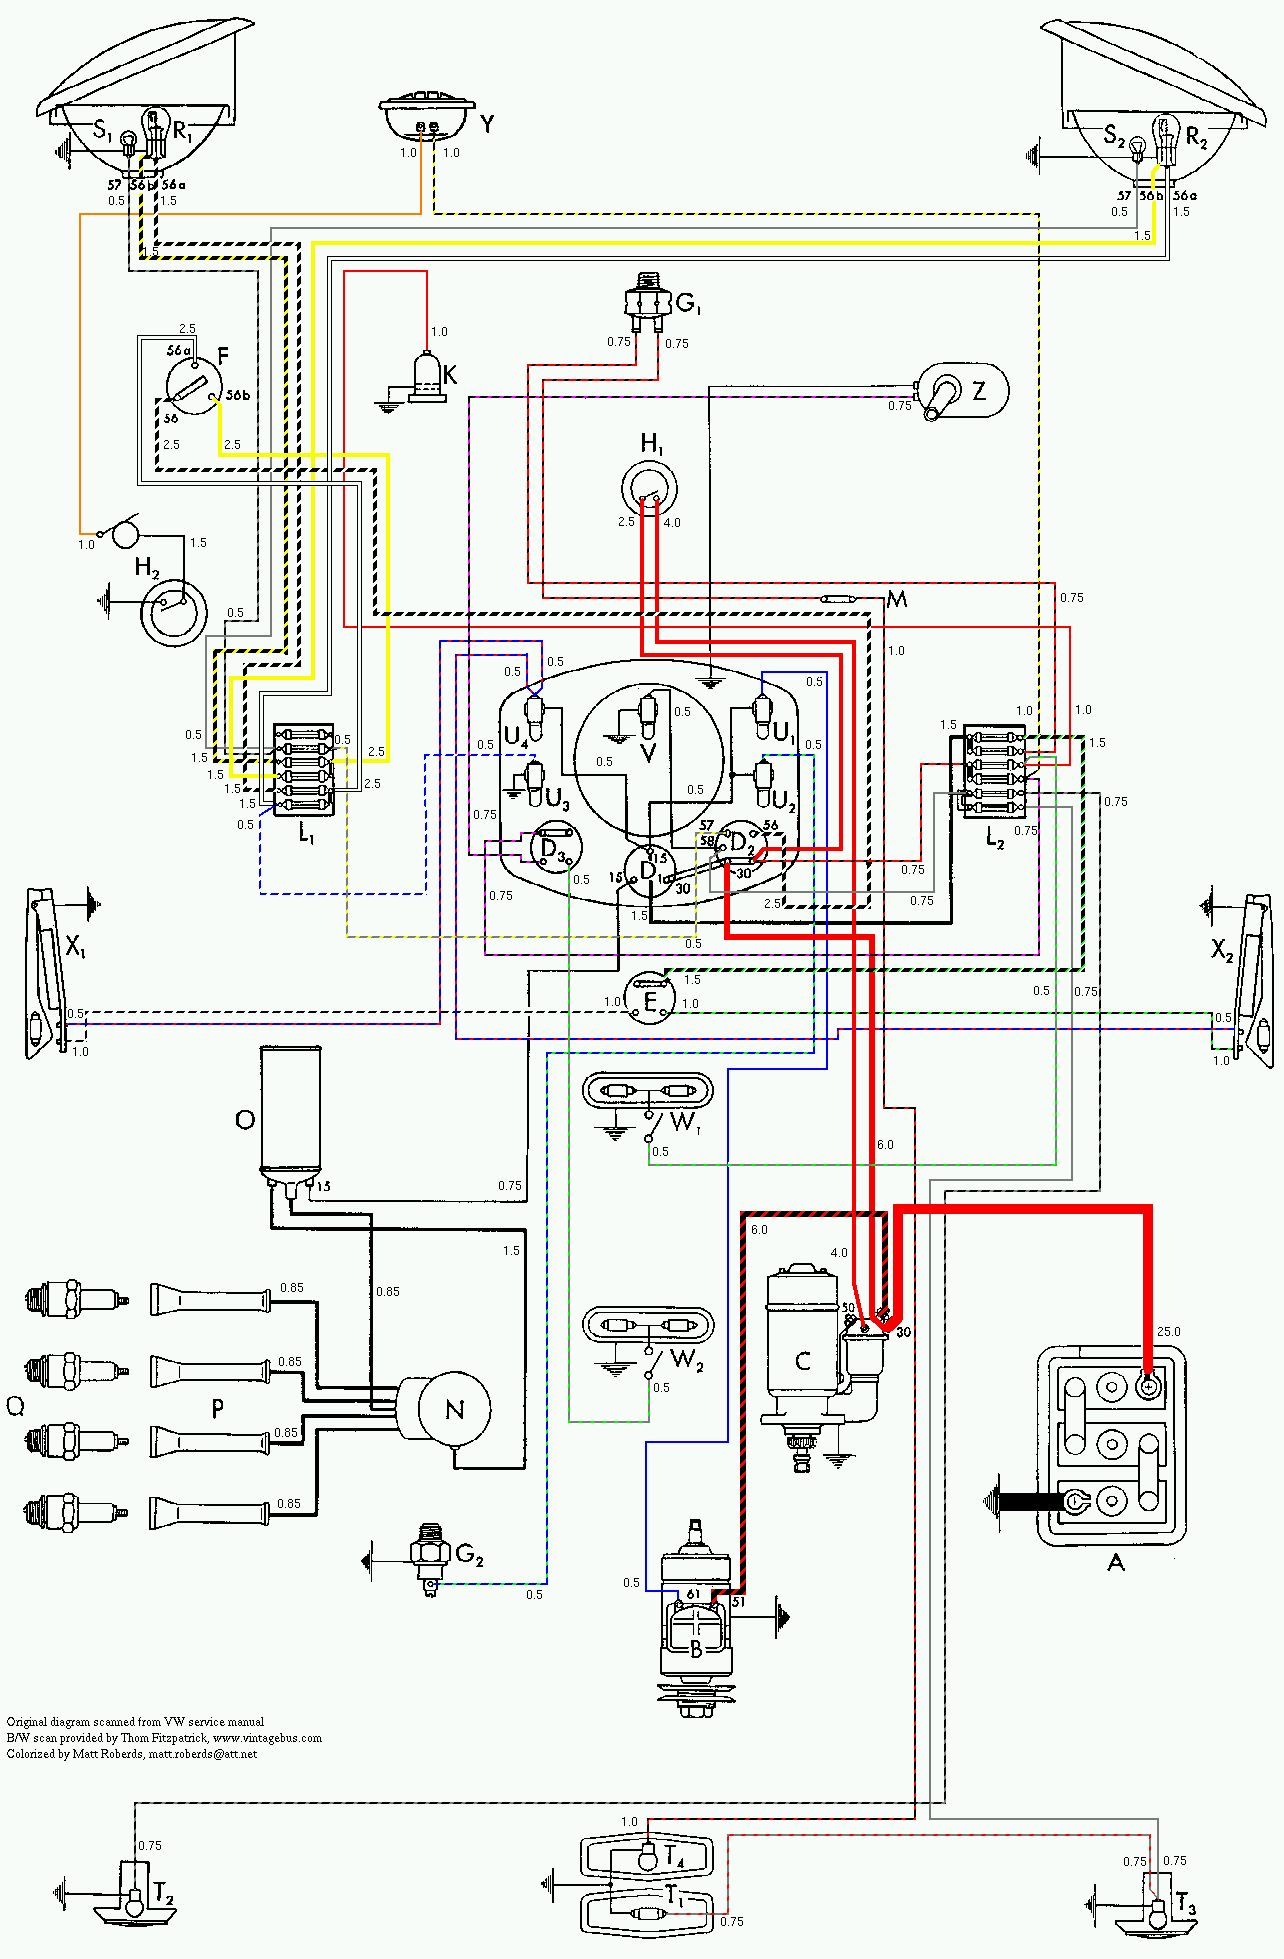 81036995 additionally Freightliner Color Chart in addition Wiring Diagram 1990 Ford F150 also 8eol6 2011 Peterbilt 389 Right Turn Signal Will Not On further New Cascadia. on freightliner headlight wiring diagram